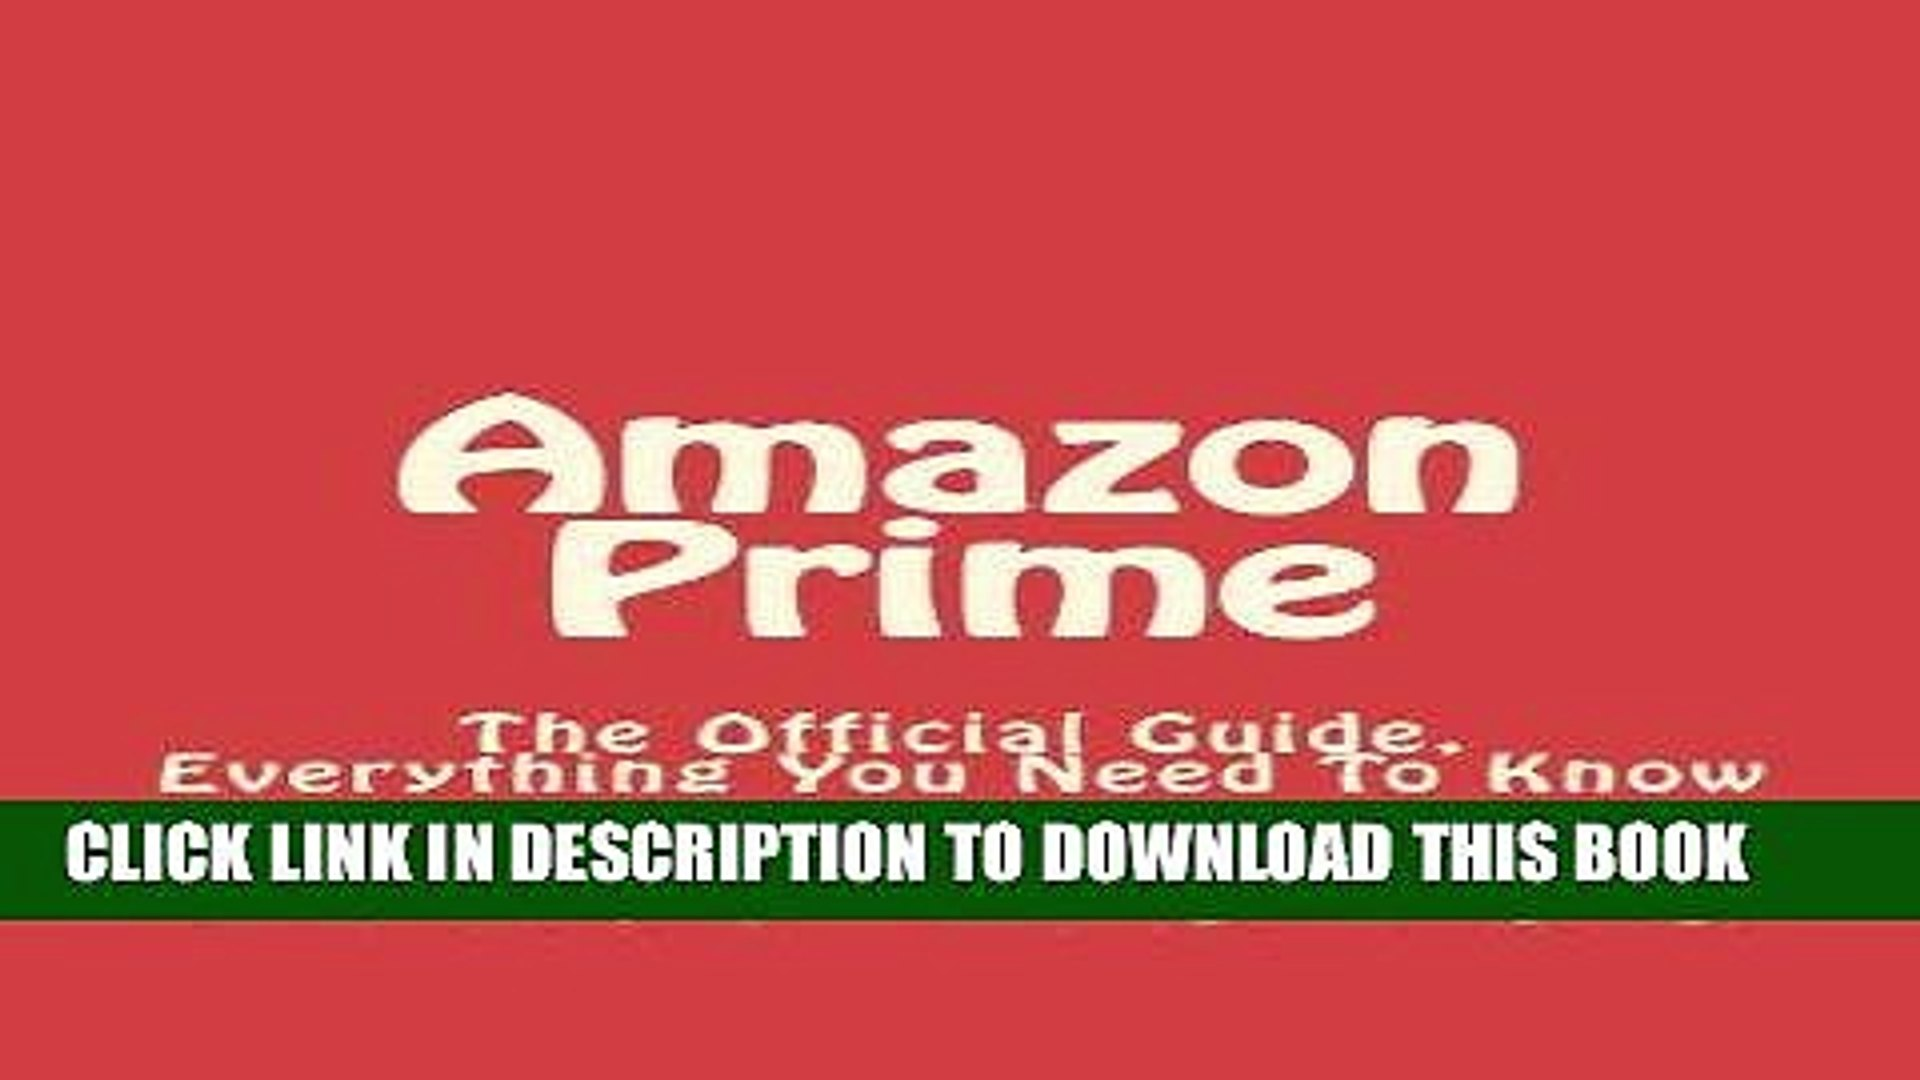 Read Now Amazon Prime: The Official Guide, Everything You Need To Know (Amazon Prime Books, Amazon